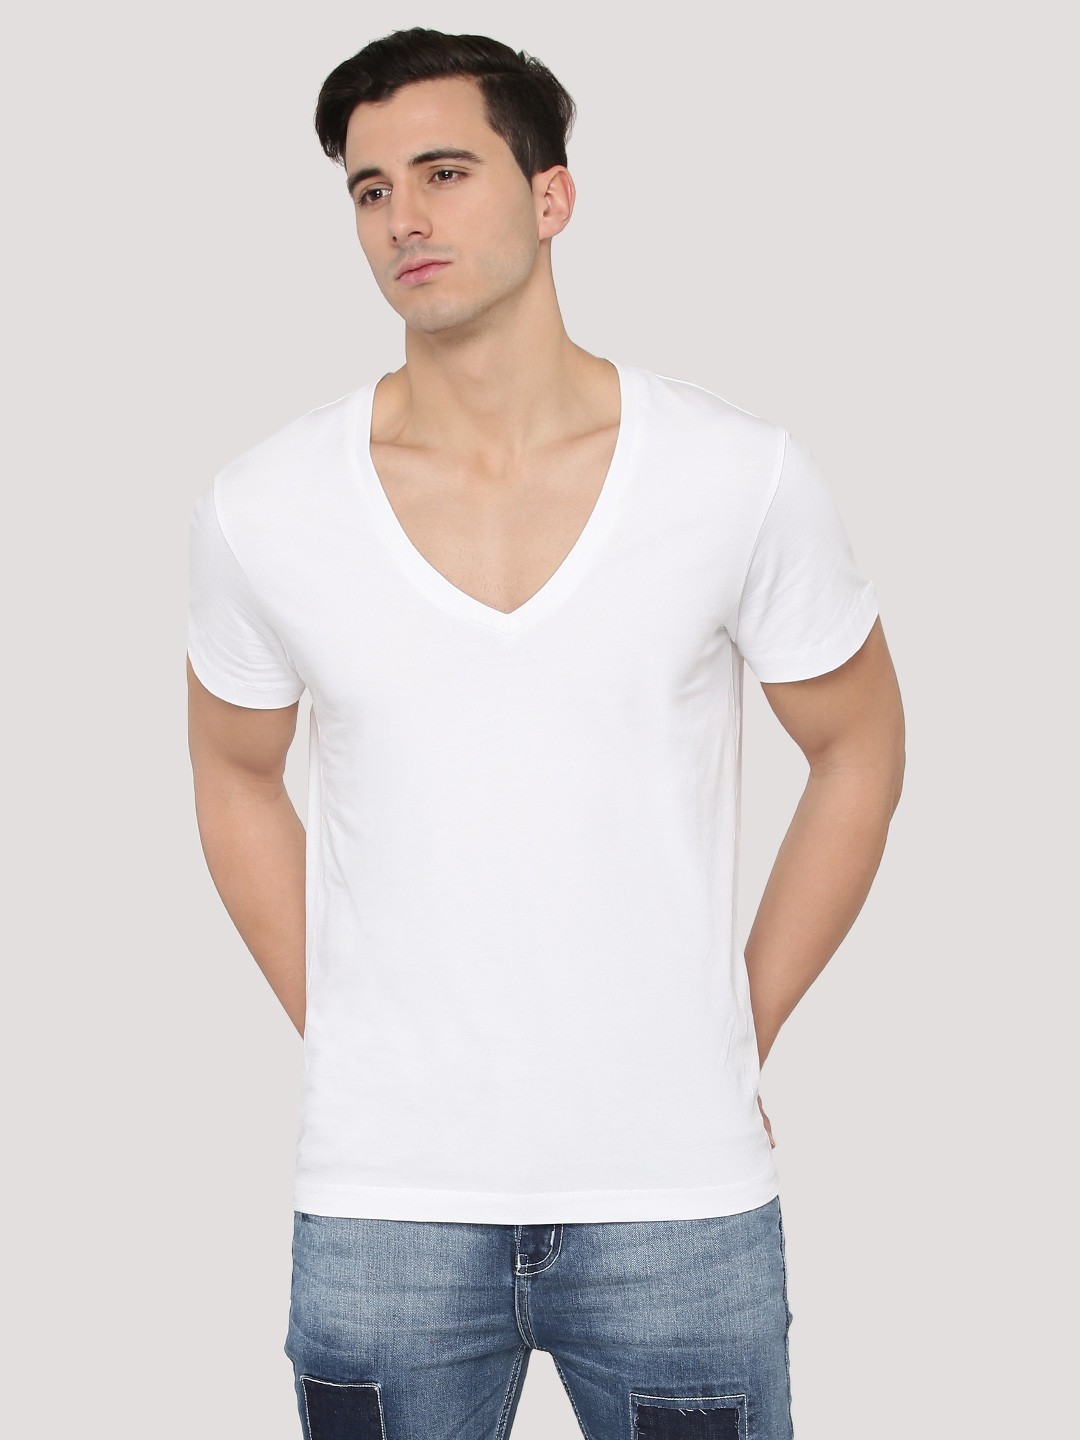 Buy Deep V Neck Muscle Fit T Shirt For Men Men 39 S White T